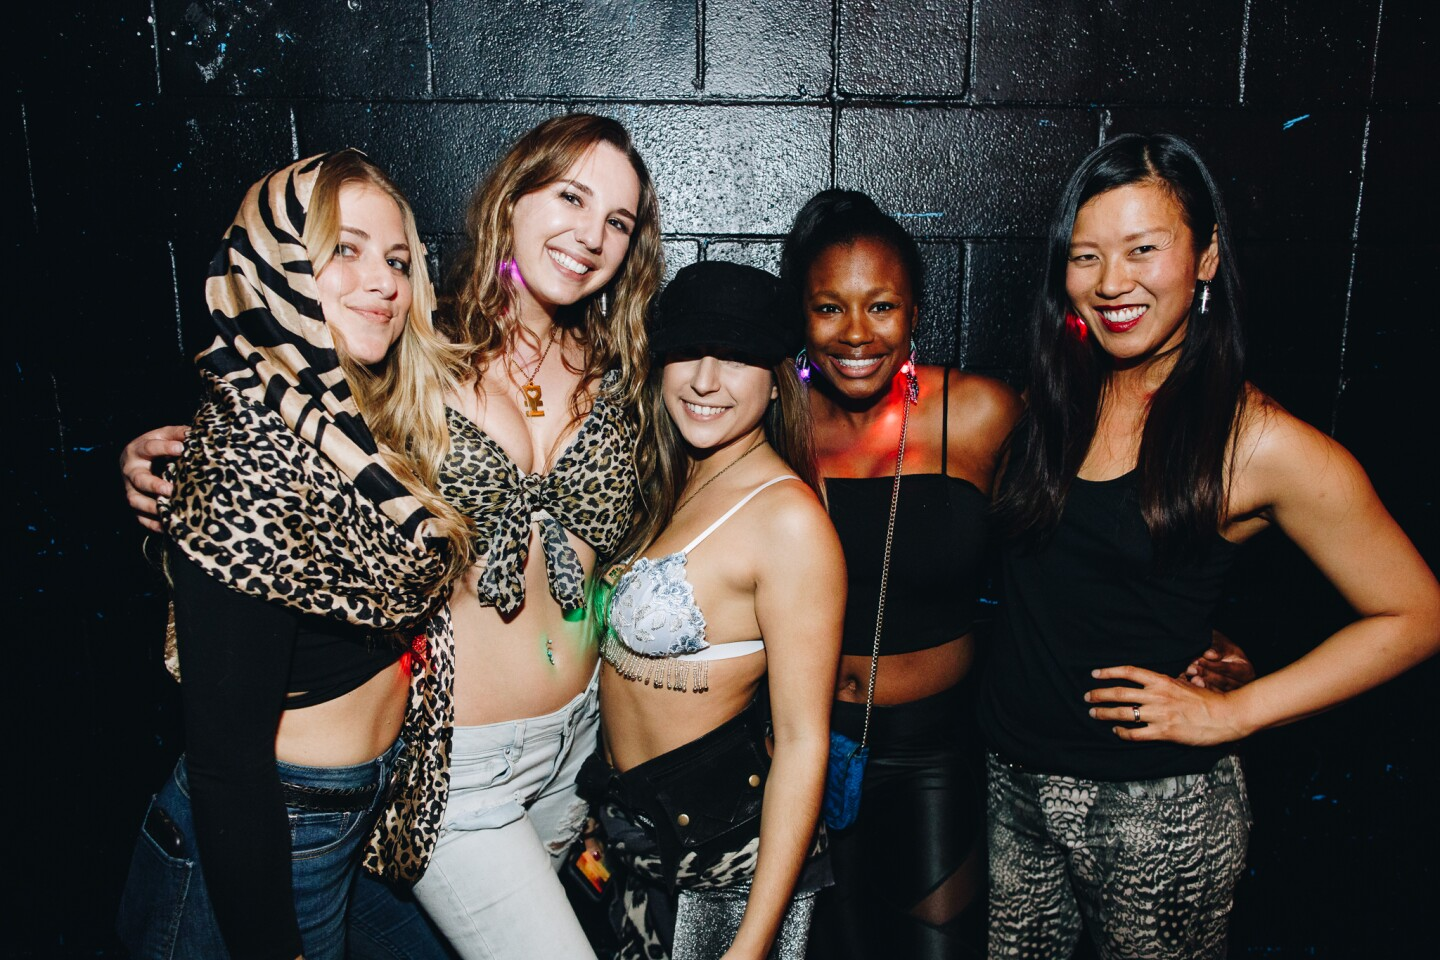 San Diegans gathered for a good cause at San Diego + Australia presented by FNGRS CRSSD & BIG BAM BOO, where a portion of proceeds were donated to Australian bushfire relief charities, at Spin nightclub in Old Town on Friday, Jan. 31, 2020.